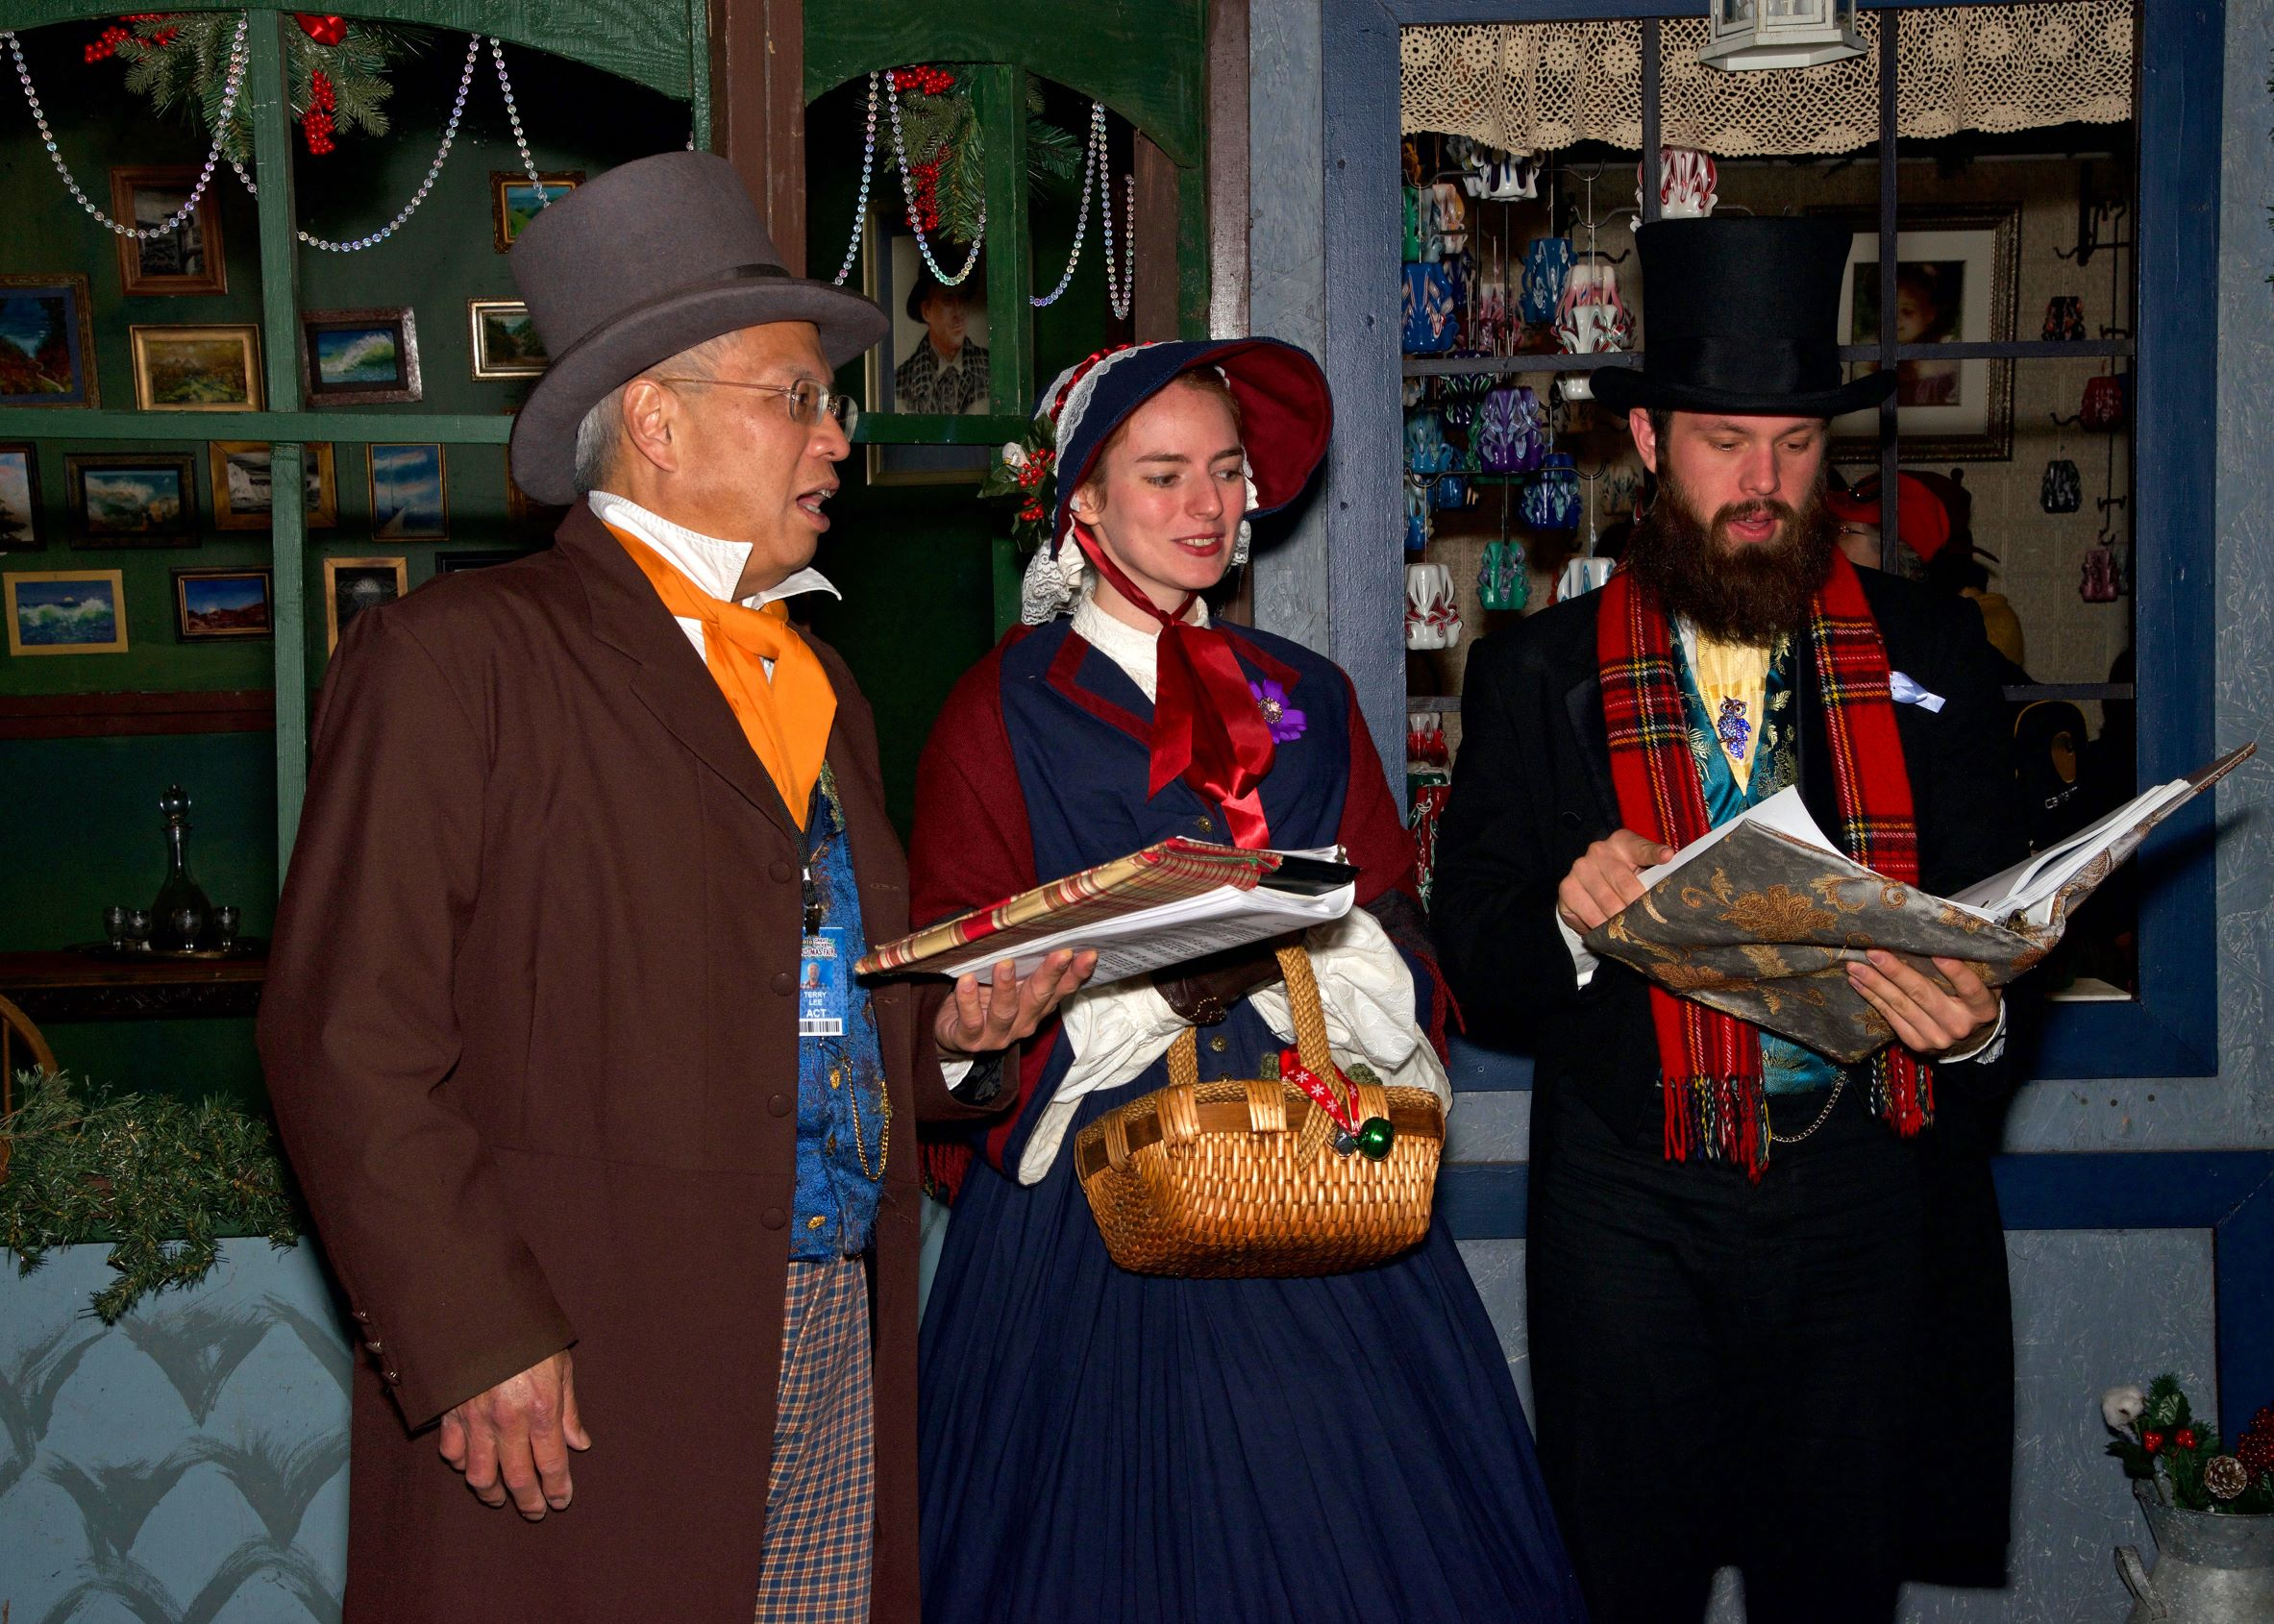 Photo of costumed Victorian carolers at the Dickens market in San Francisco.